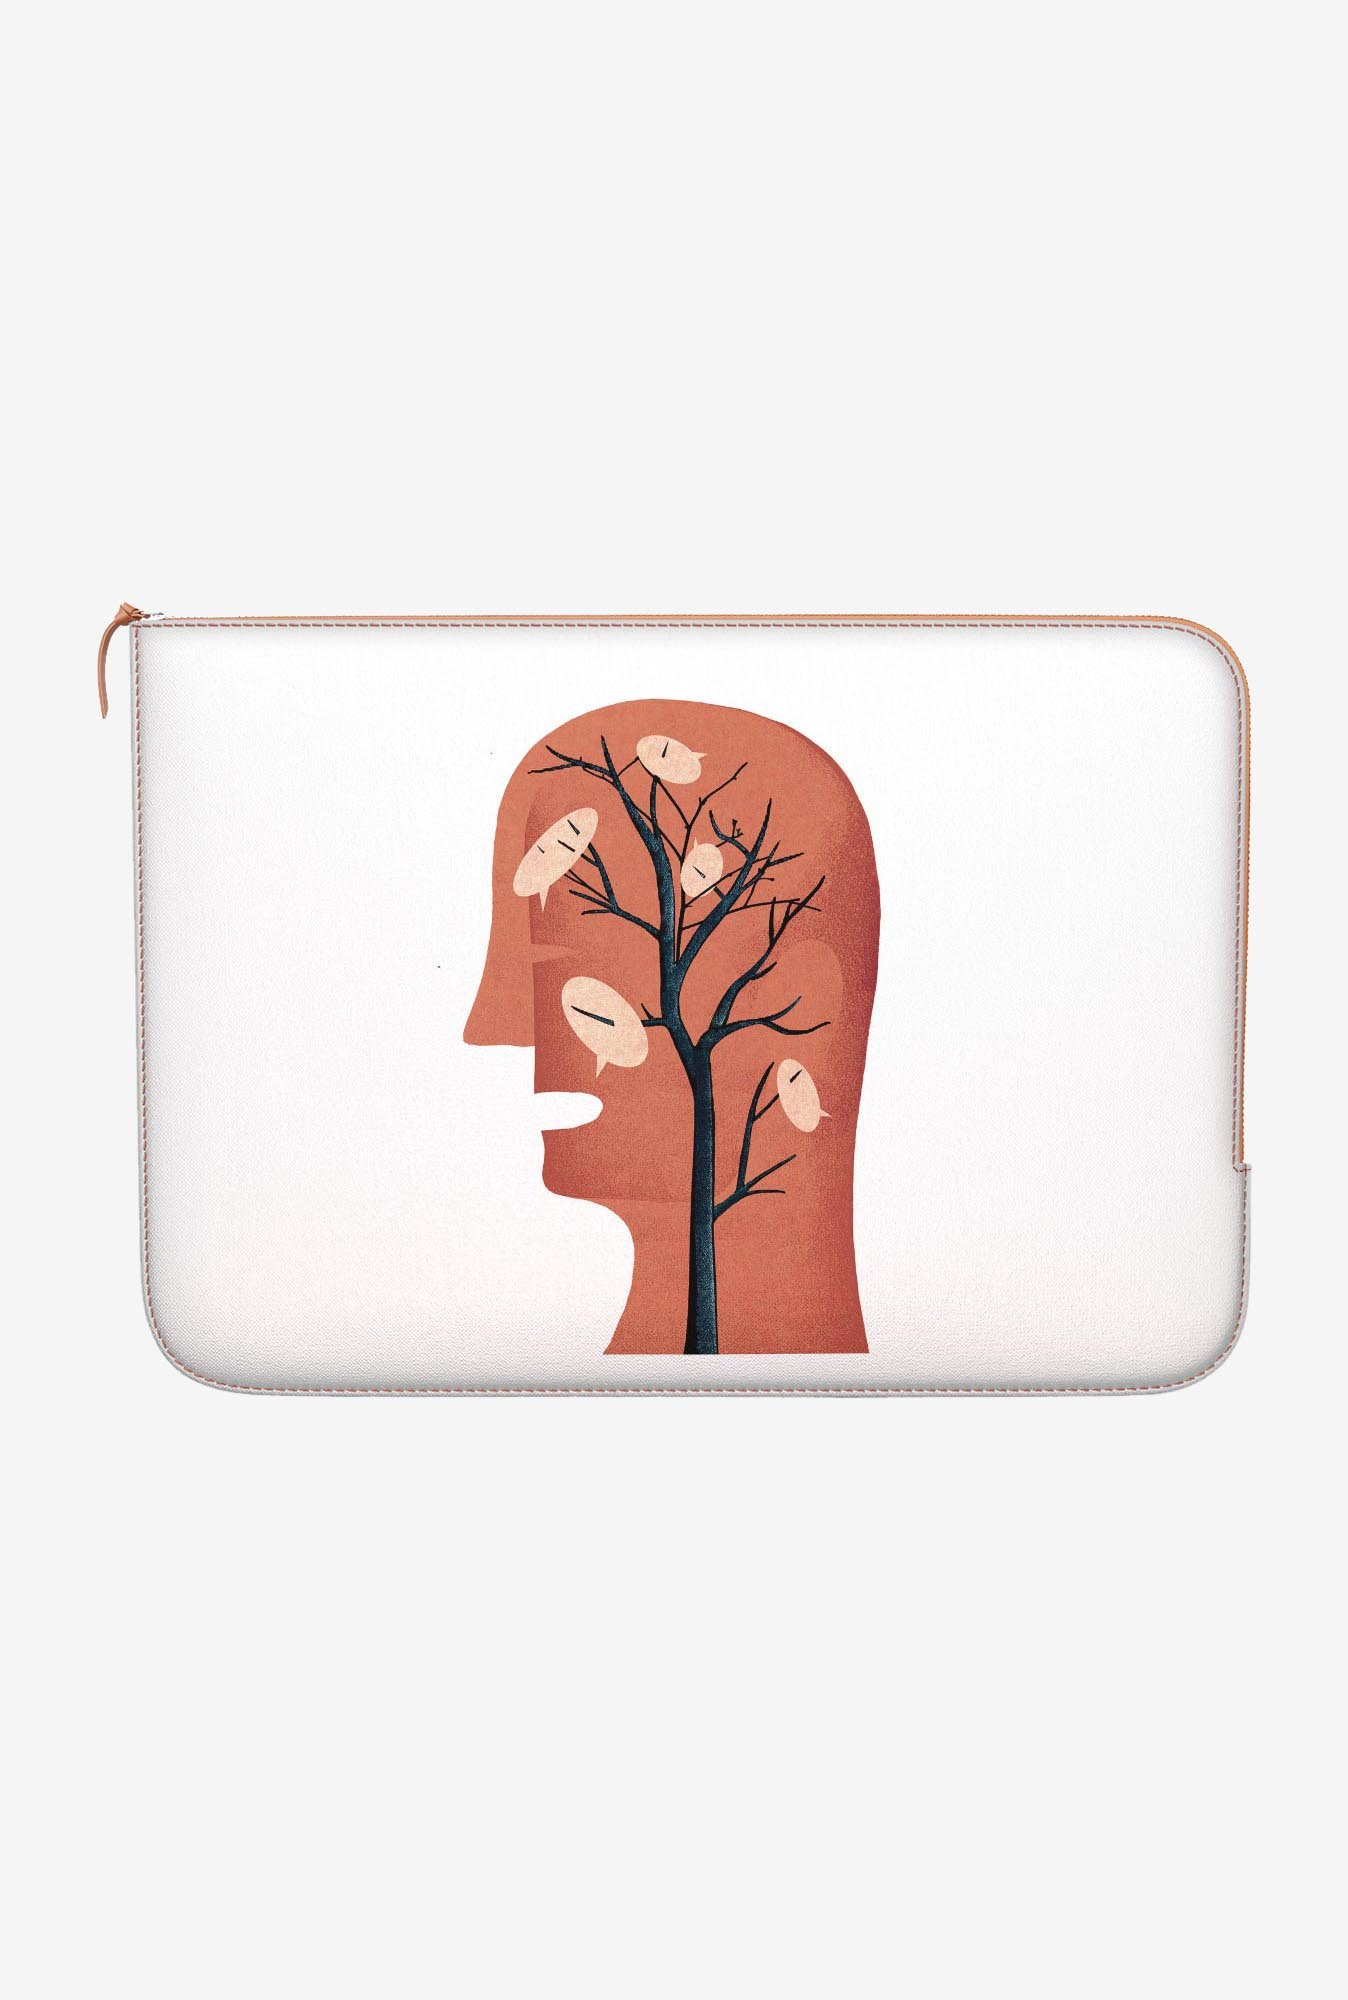 DailyObjects Unspoken Thought MacBook Air 13 Zippered Sleeve